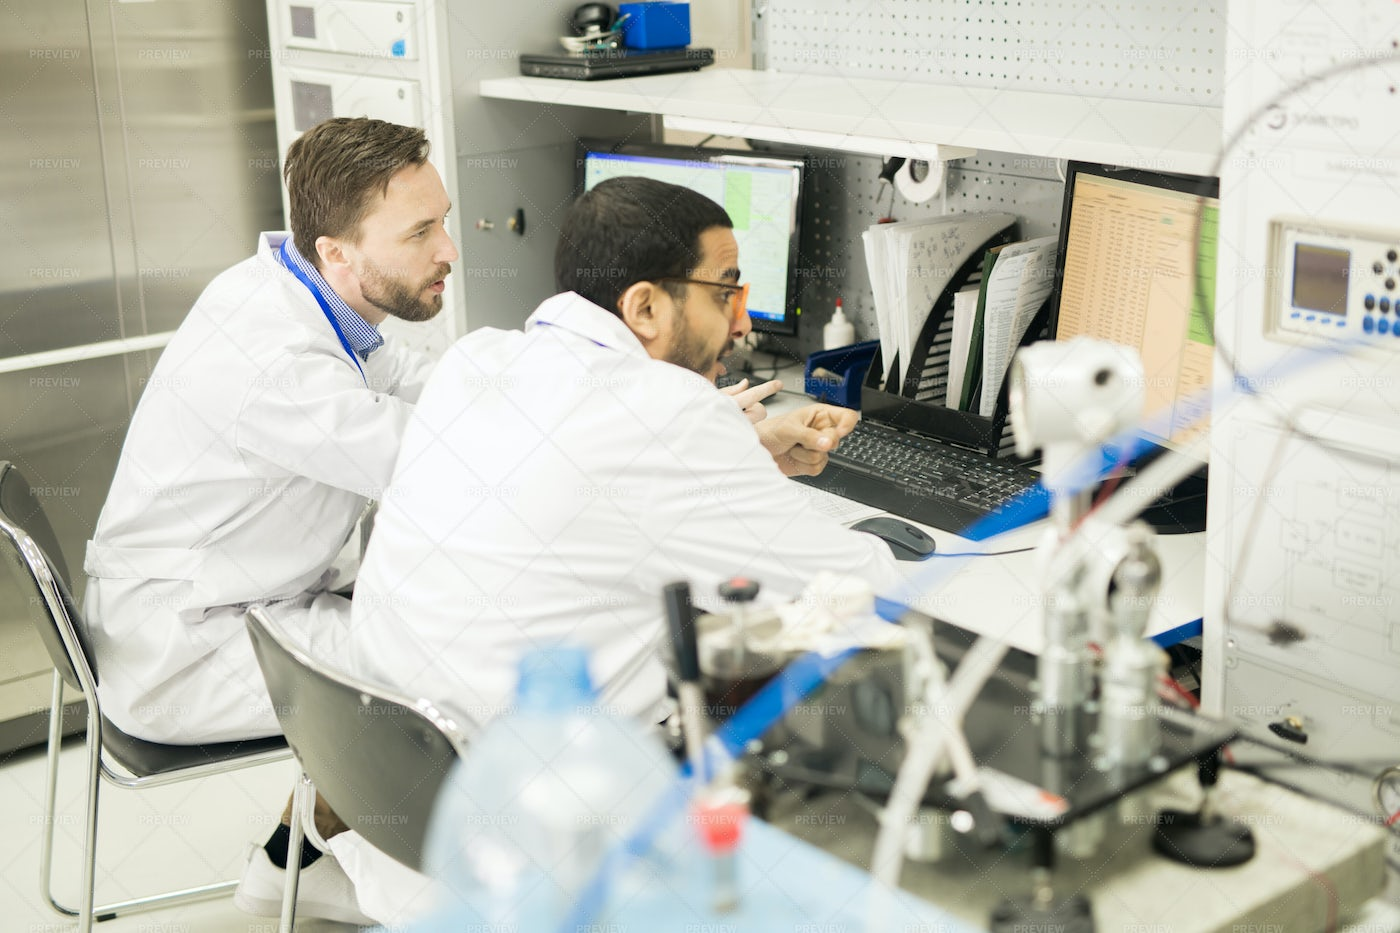 Busy Technicians Viewing Data In...: Stock Photos